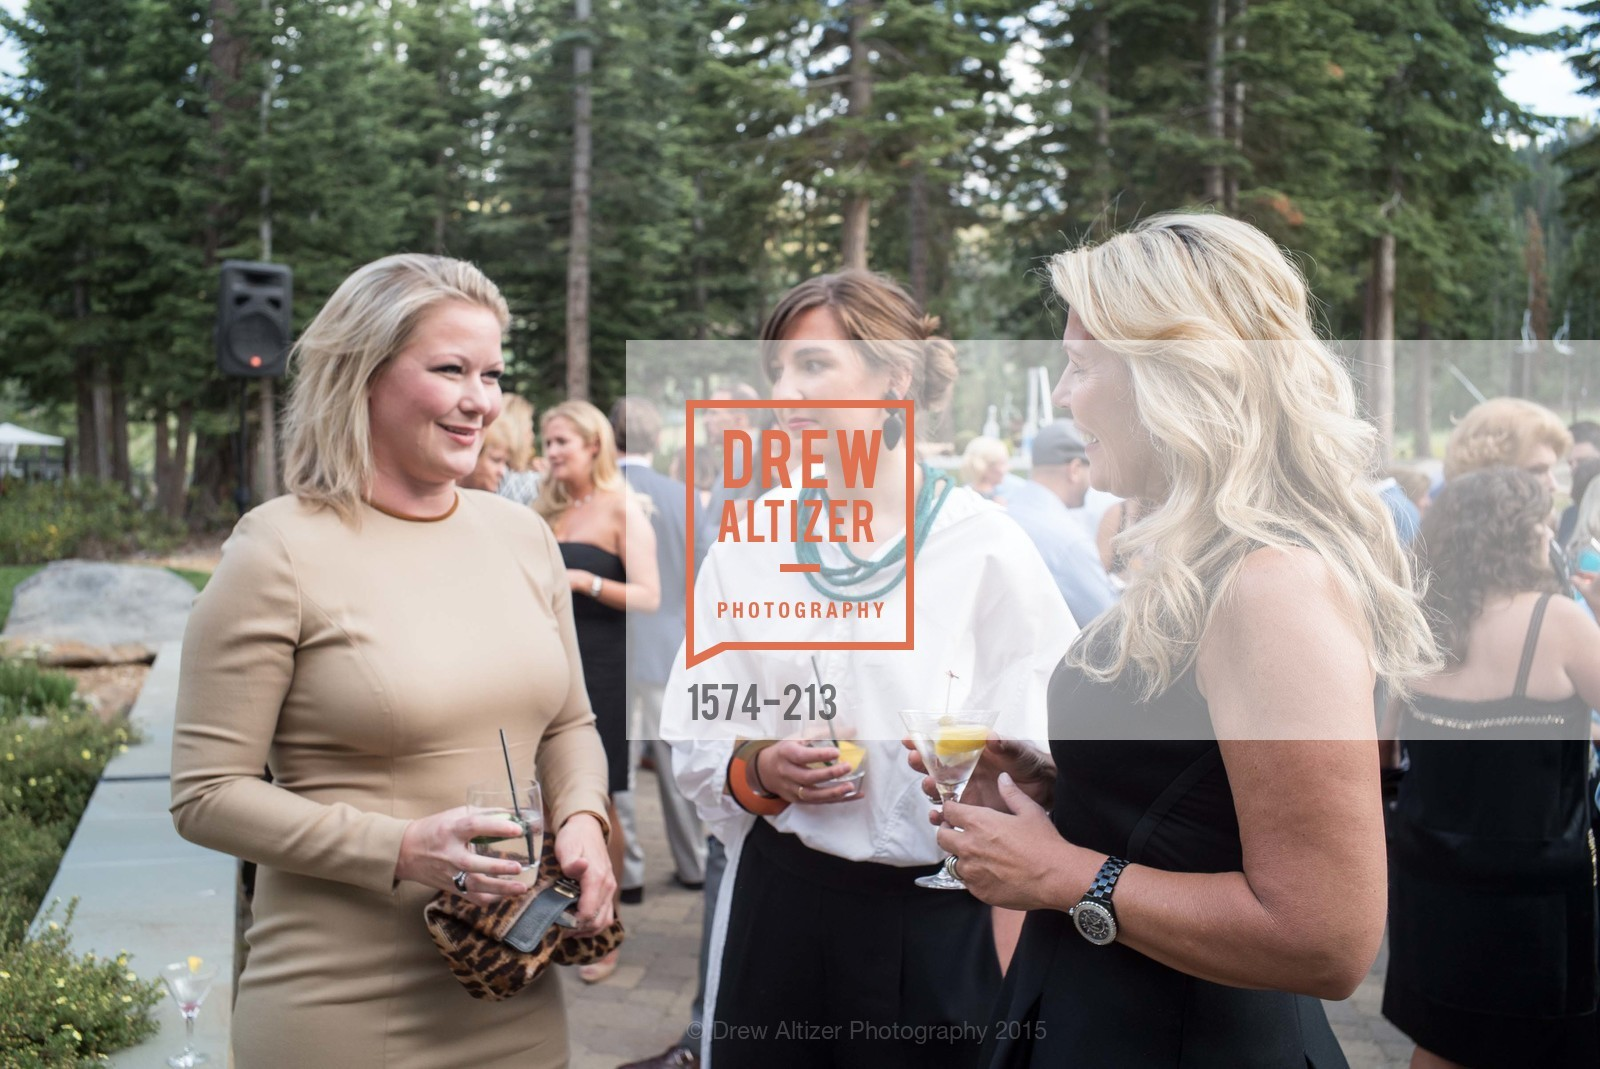 Liz Curtis, Justine Macfee, League to Save Lake Tahoe Sponsor Cocktail Party, Ritz-Carlton, Lake Tahoe, July 31st, 2015,Drew Altizer, Drew Altizer Photography, full-service agency, private events, San Francisco photographer, photographer california